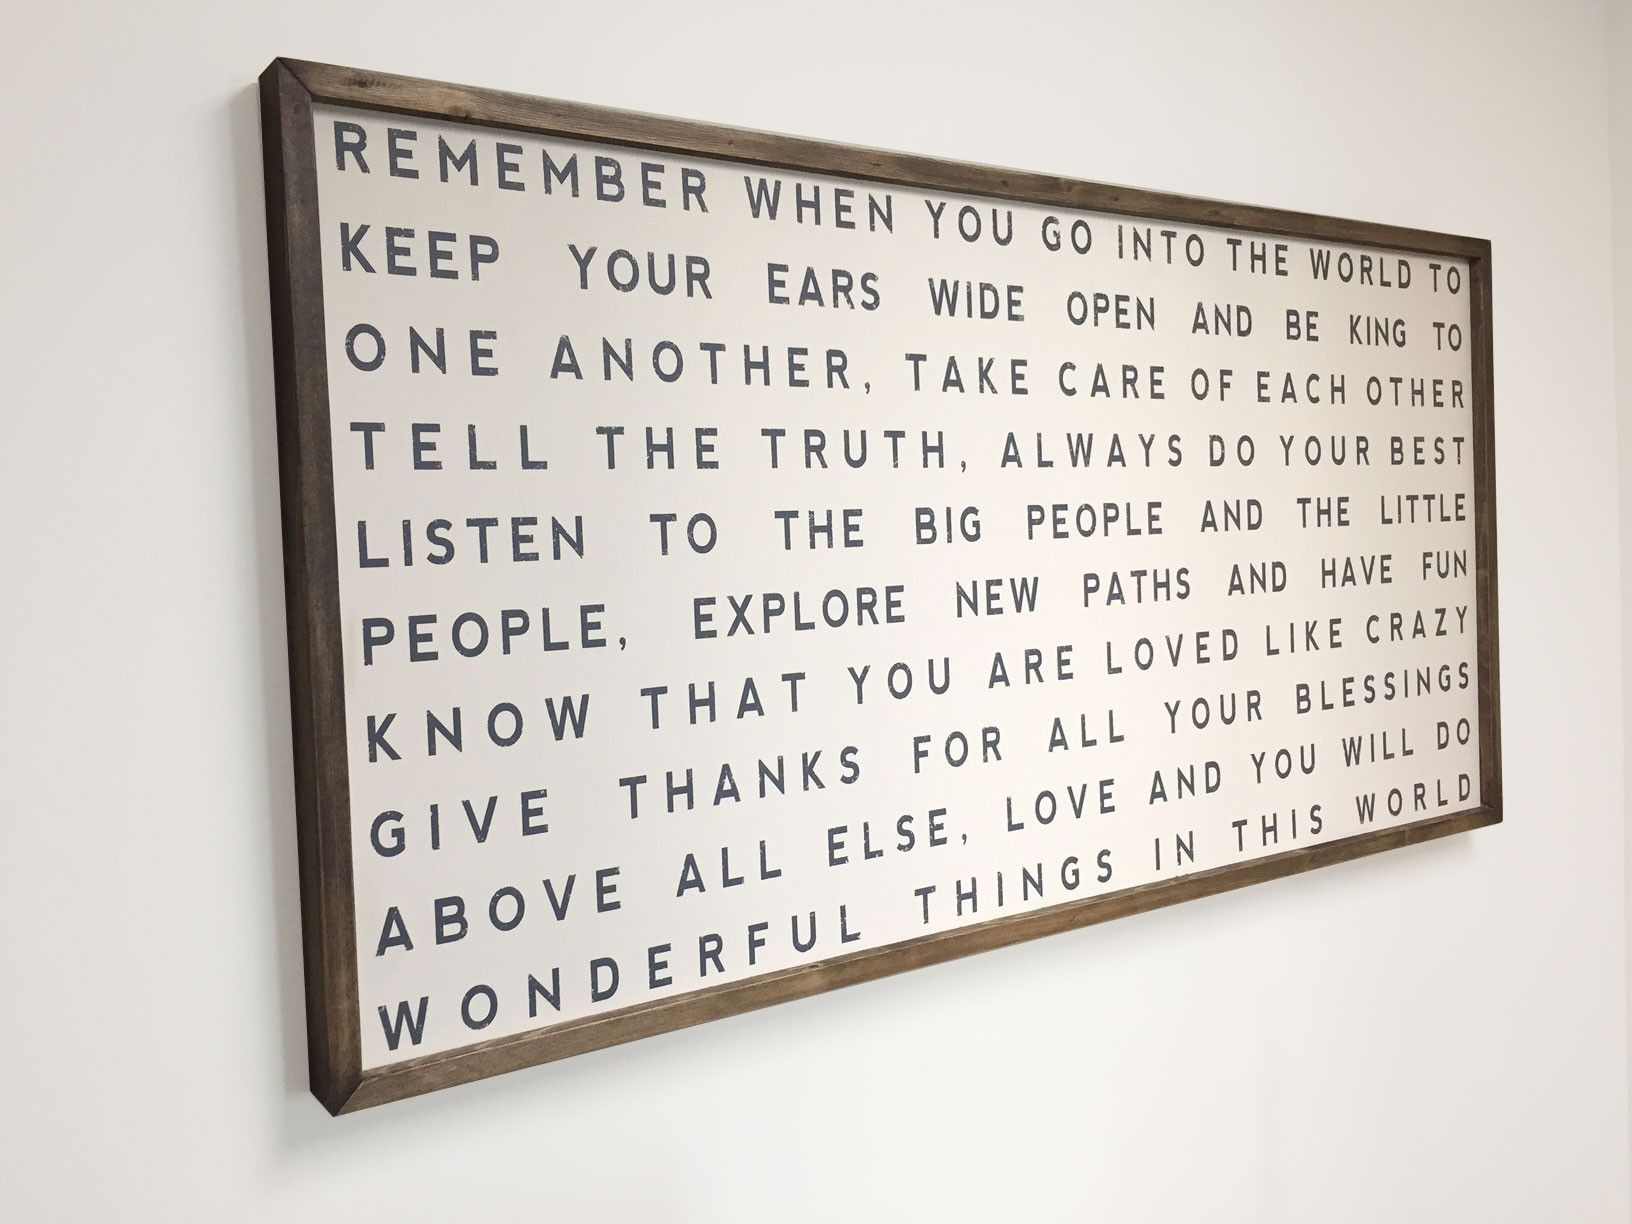 Framed Living Room, Family Room Wall Art, Family Rules, Remember When You Go Into The World, 48x24